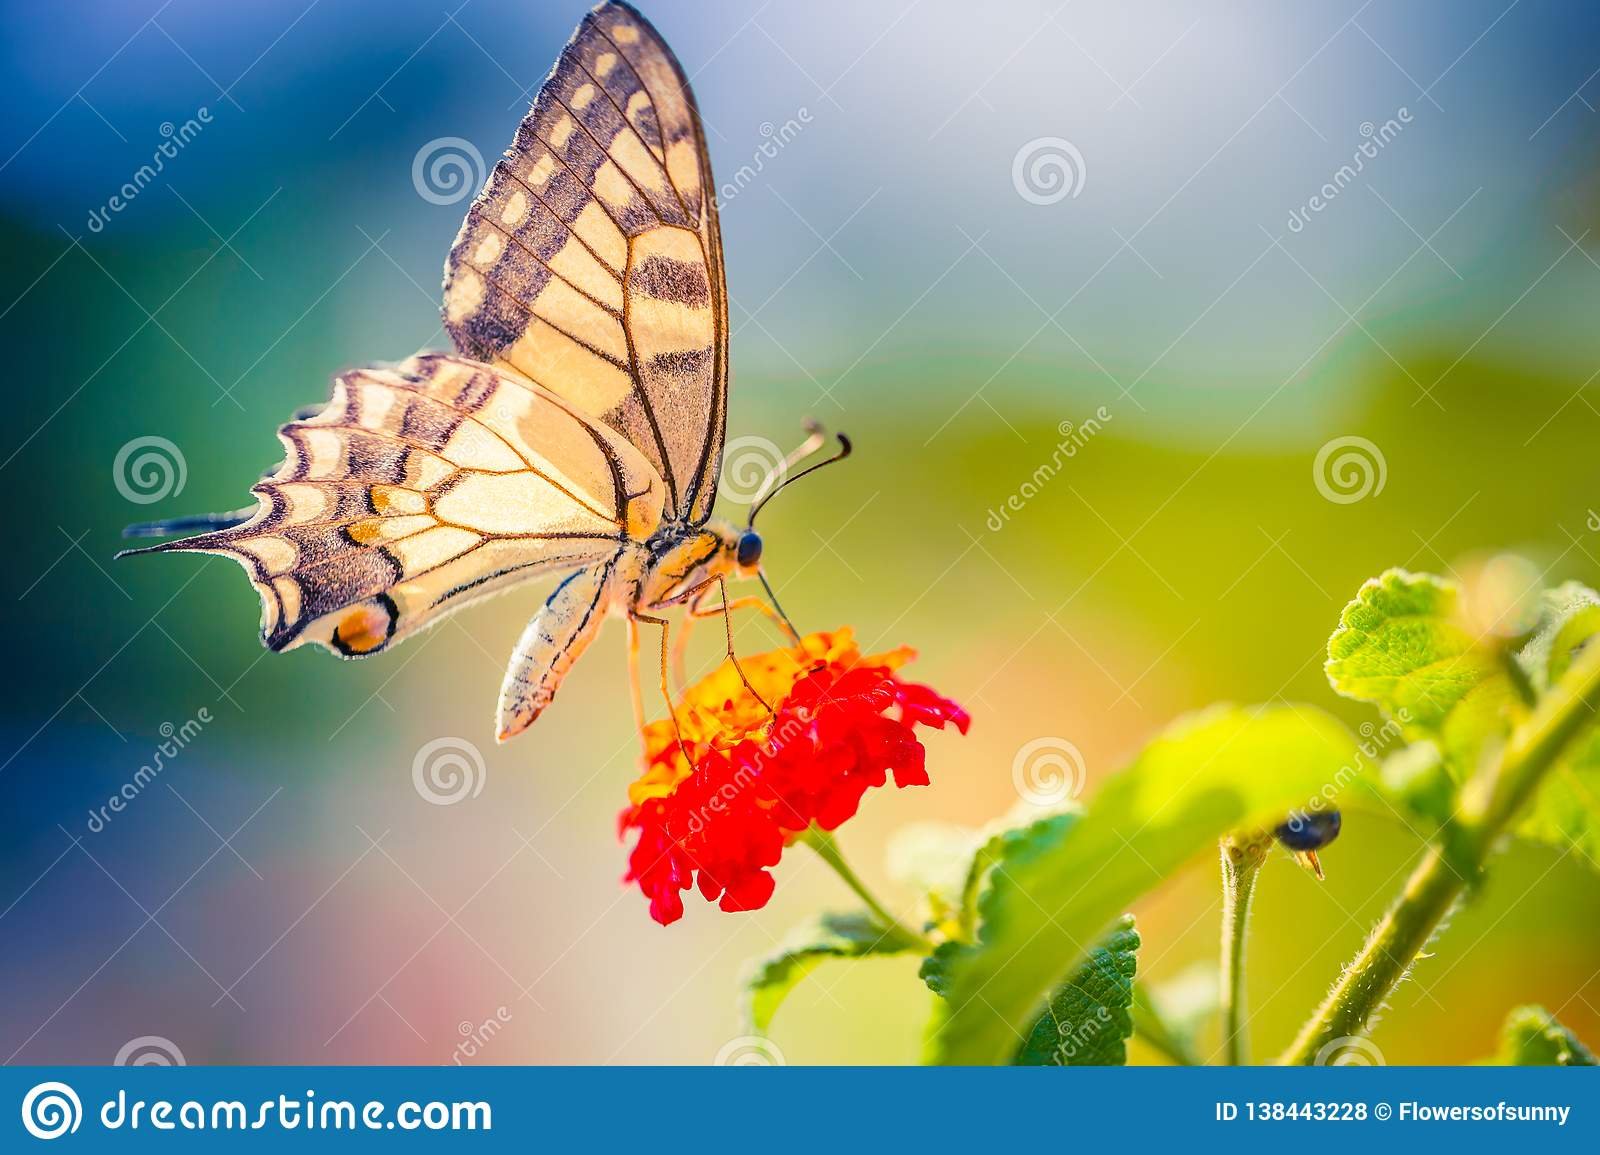 Summer Nature View Of A Beautiful Butterfly With Colorful Meadow Wonderful Scene Under Sunlight Stock Photo Image Amazing Background 138443228